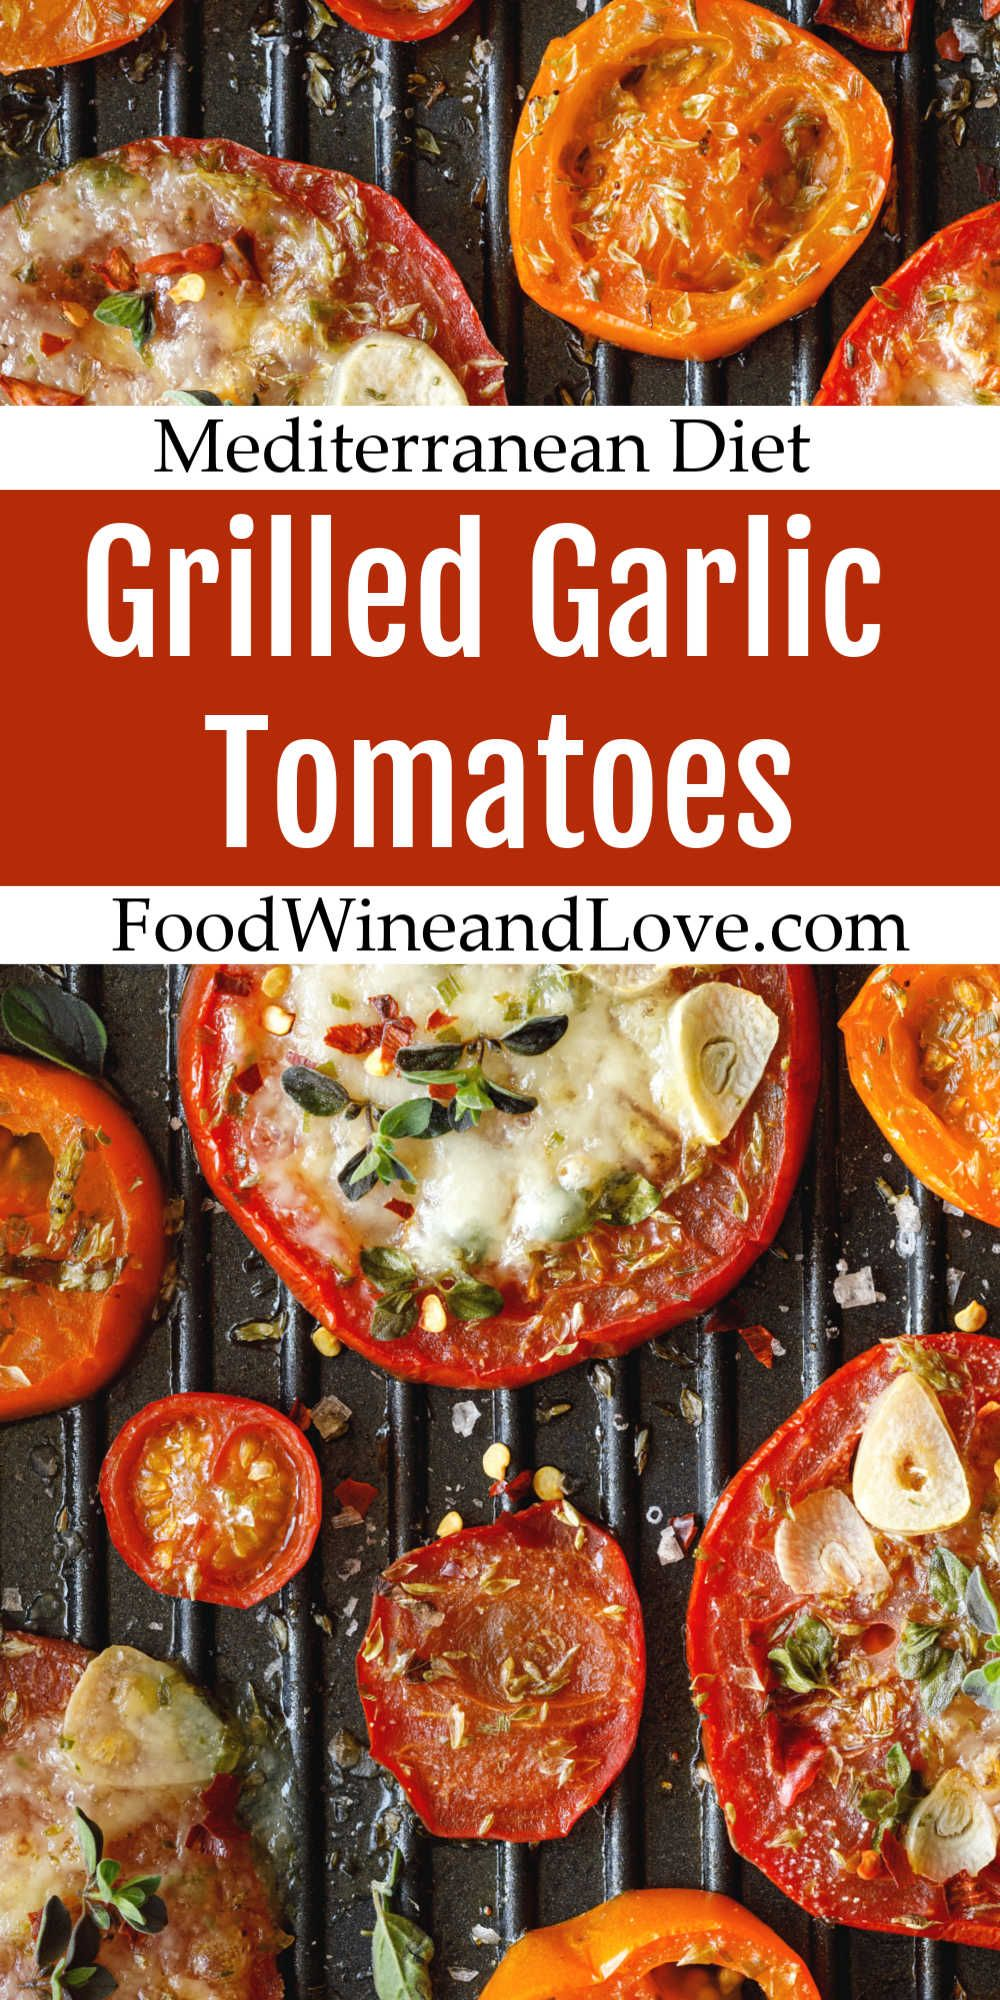 Easy Grilled Garlic Tomatoes In 2020 Grilled Tomato Recipes Grilled Vegetable Recipes Summer Dinner Recipes Grill